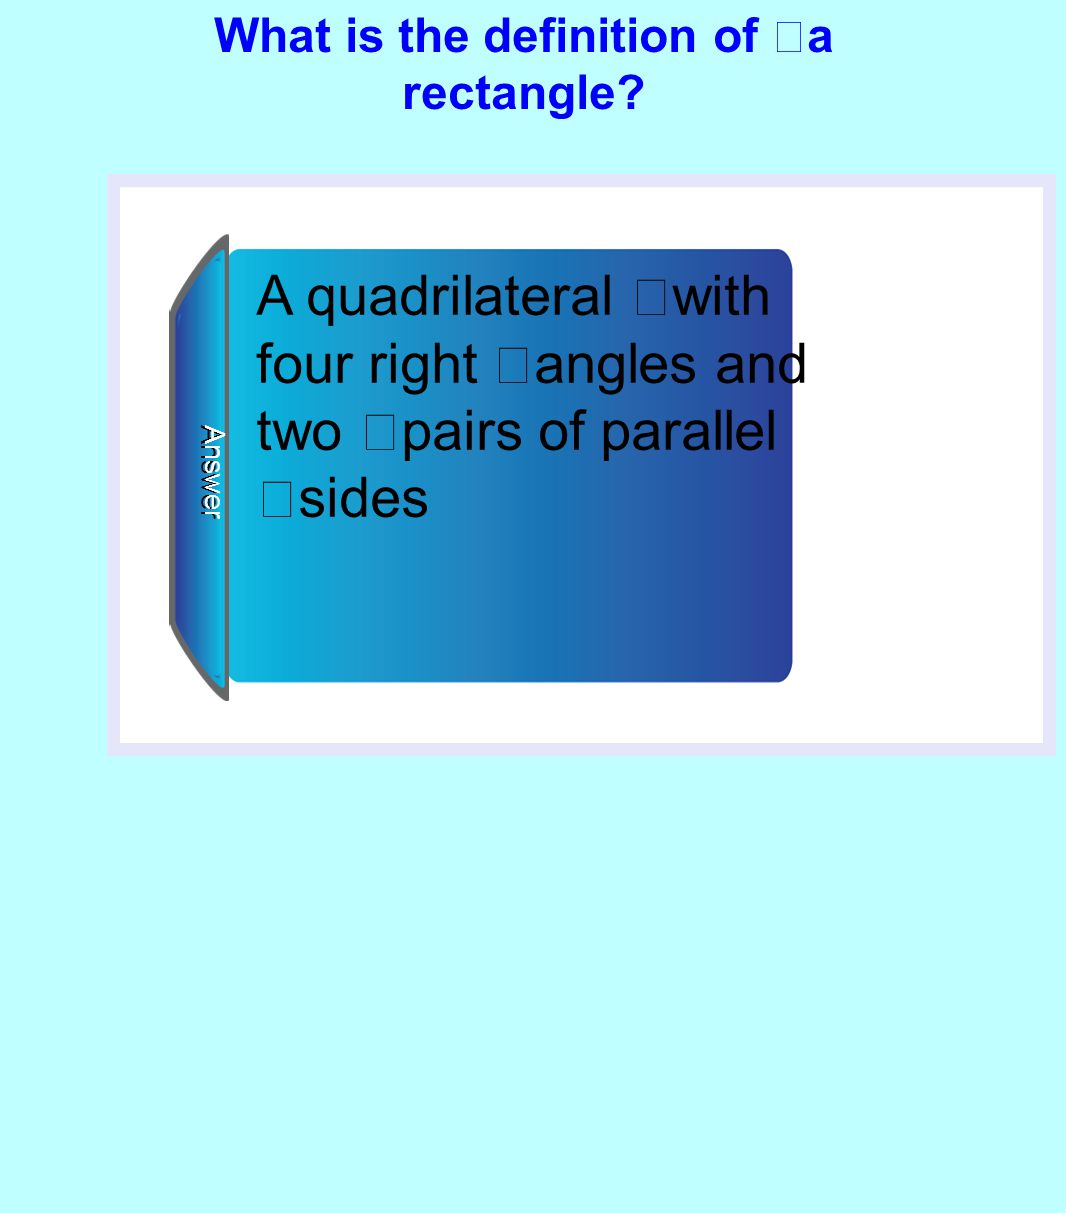 What is the definition of a rectangle